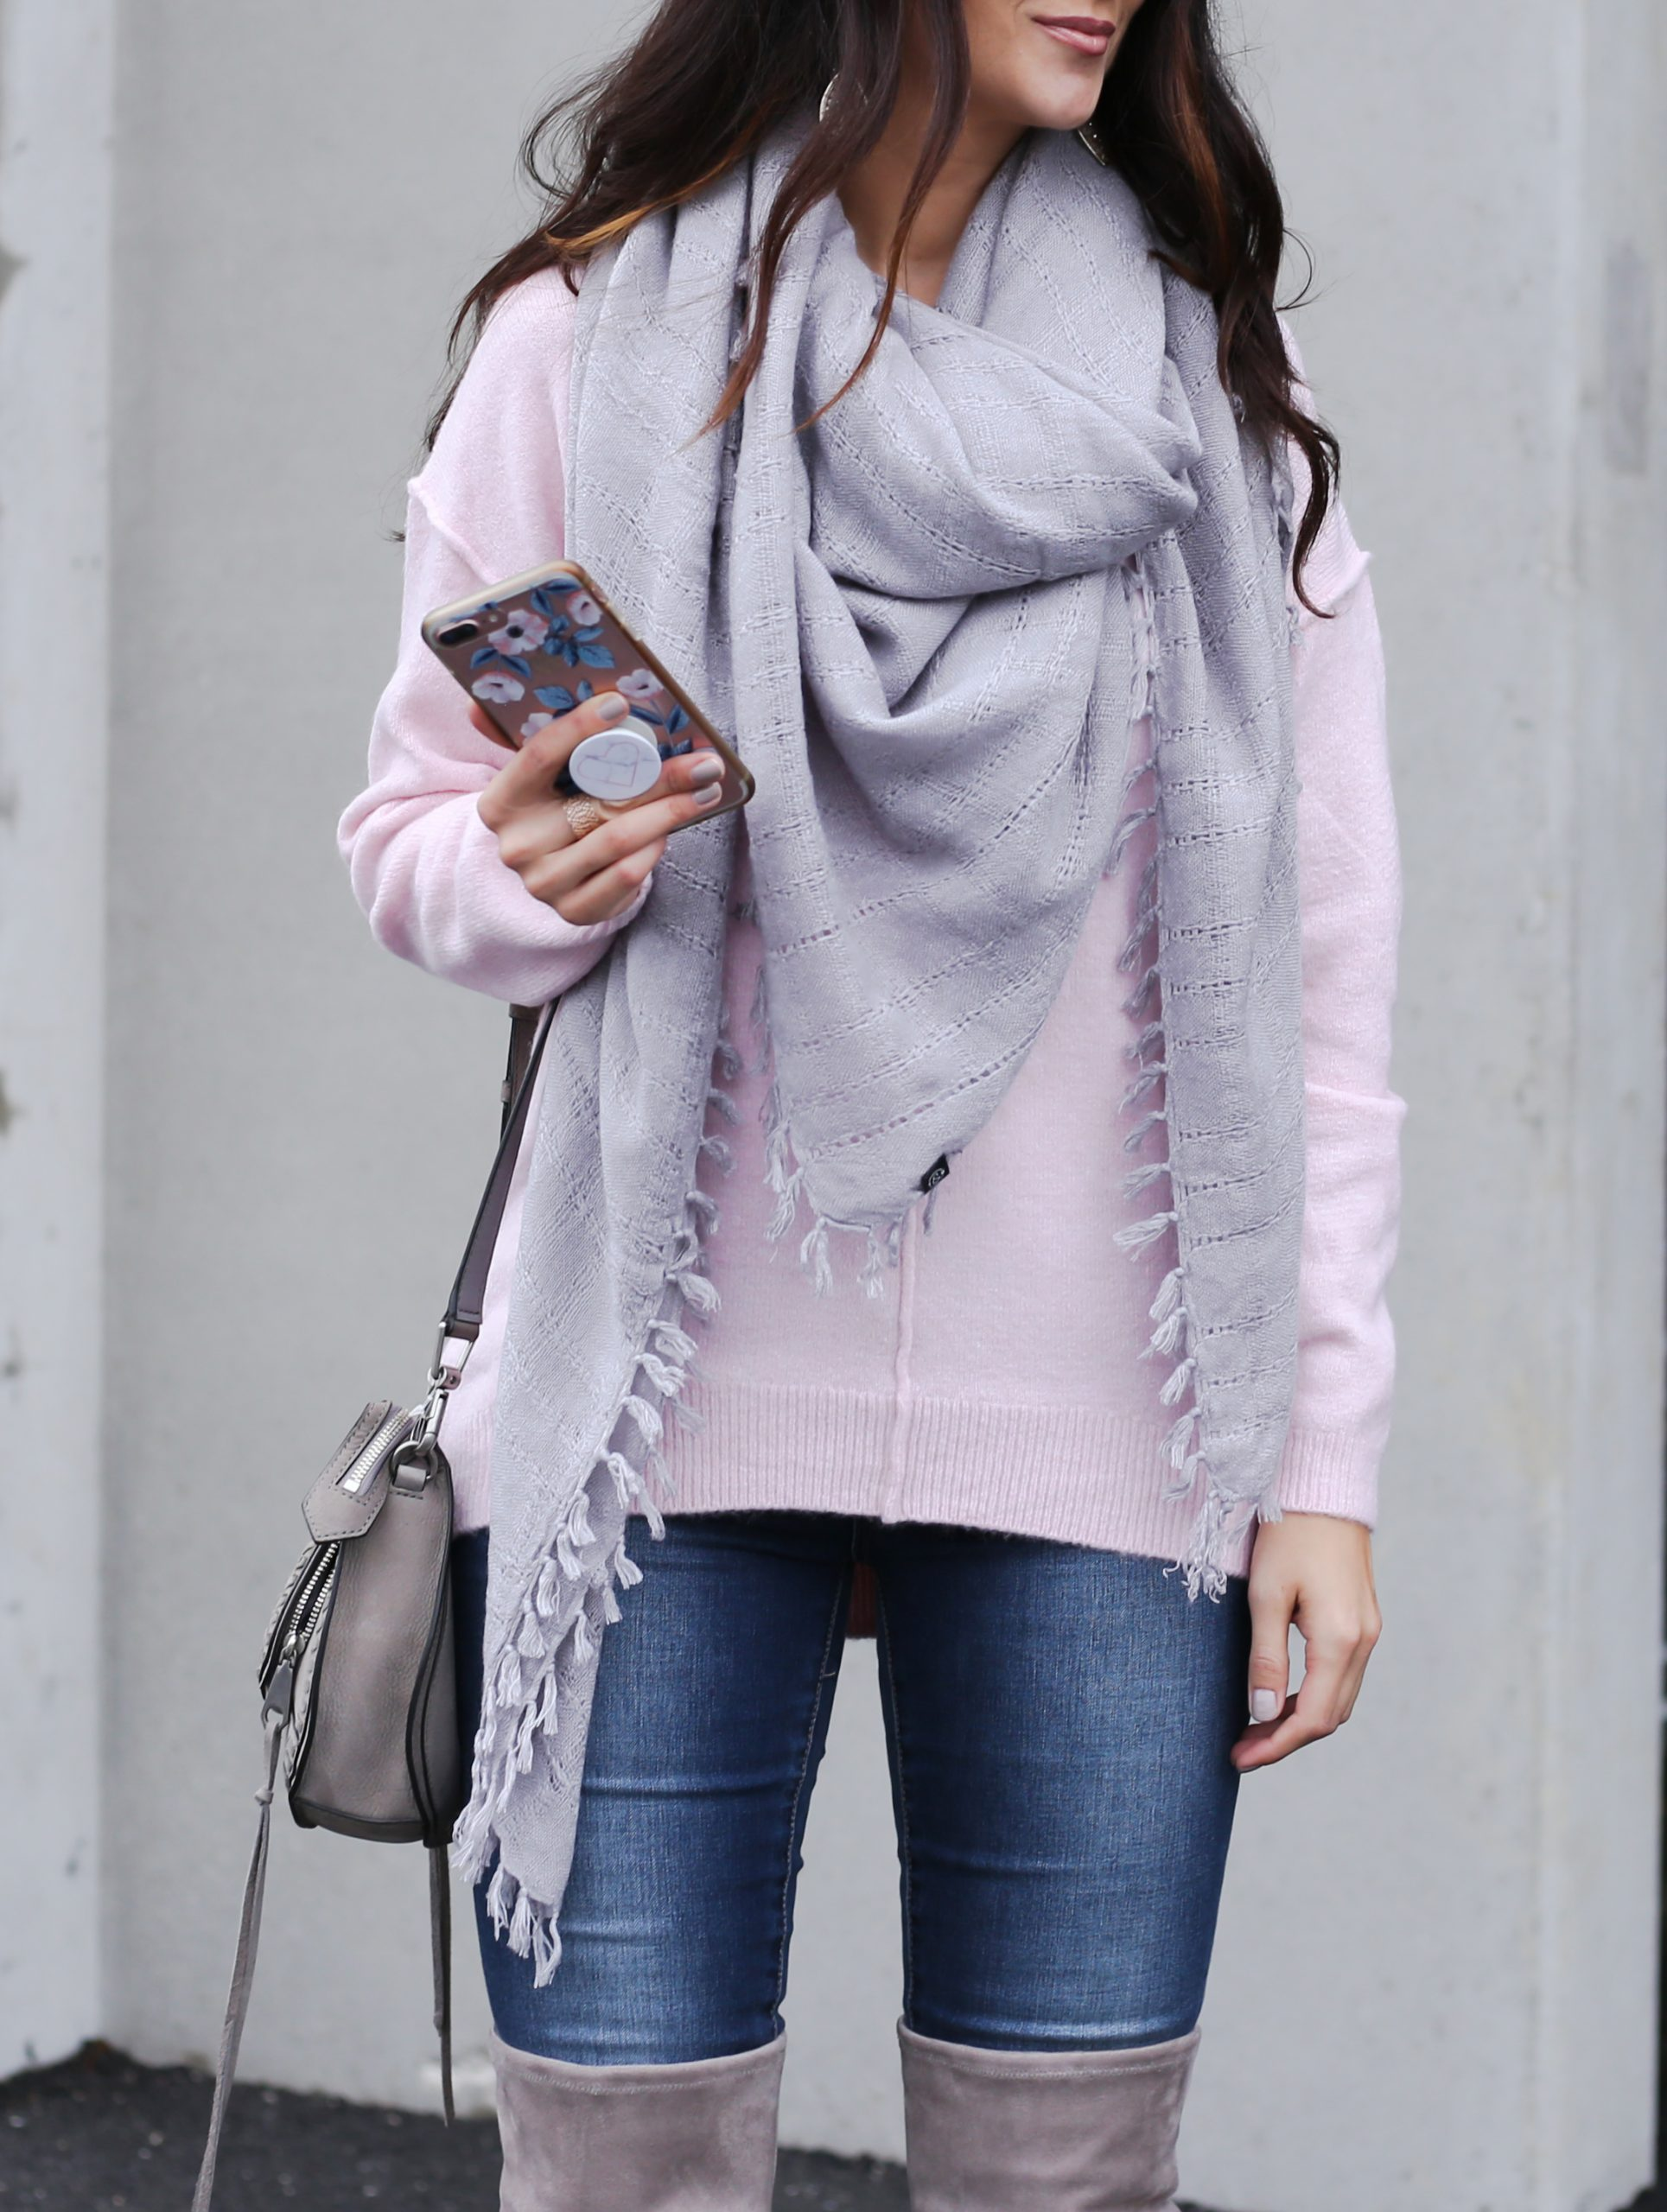 blogger Anna Monteiro wearing oversized scarf in casual holiday outfit